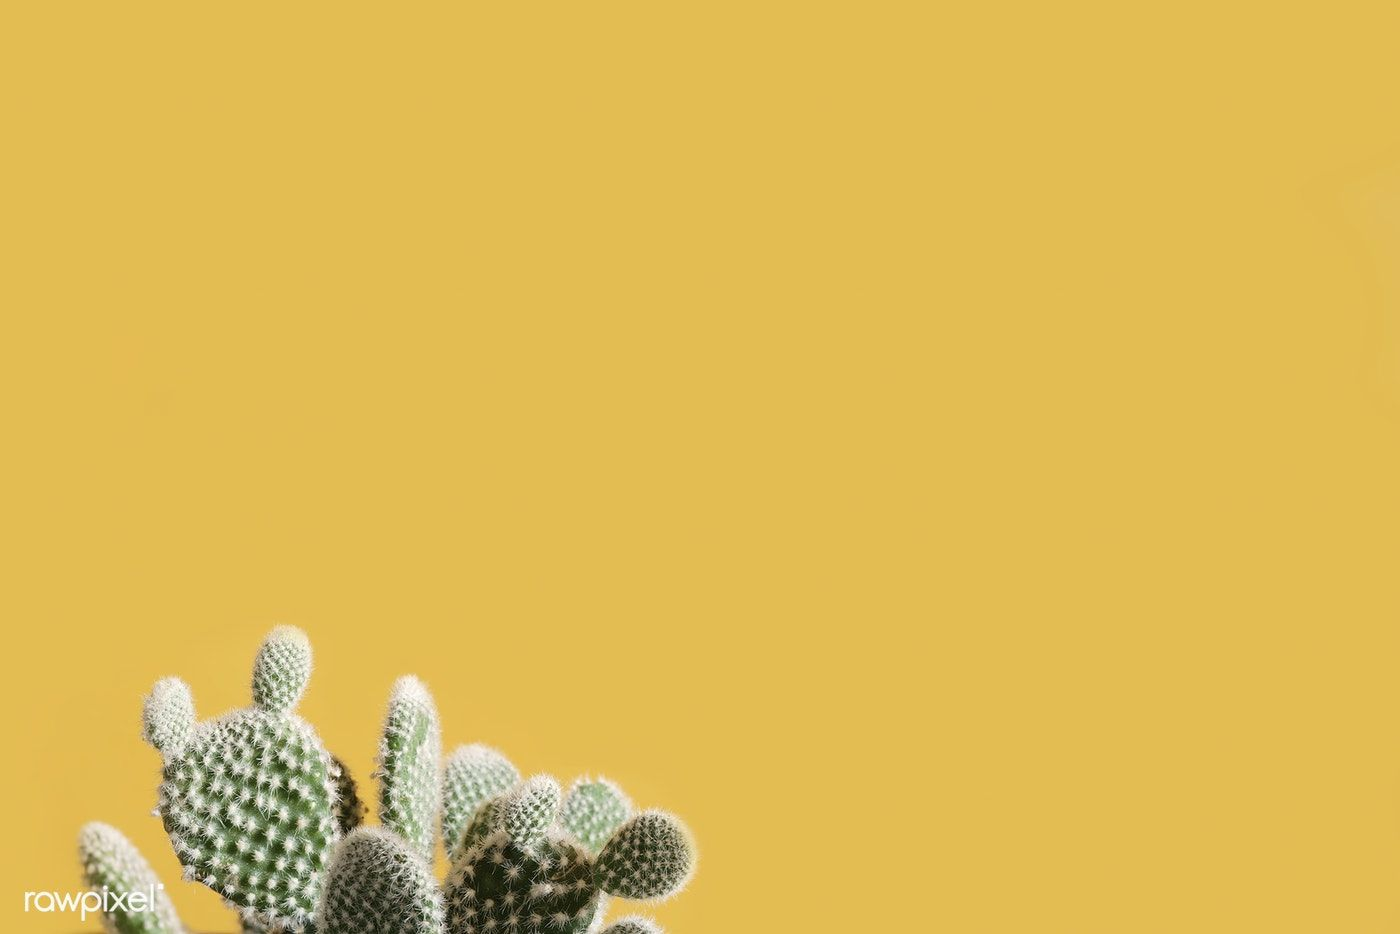 Cactus on a yellow background image by rawpixelcom Scott 1400x934